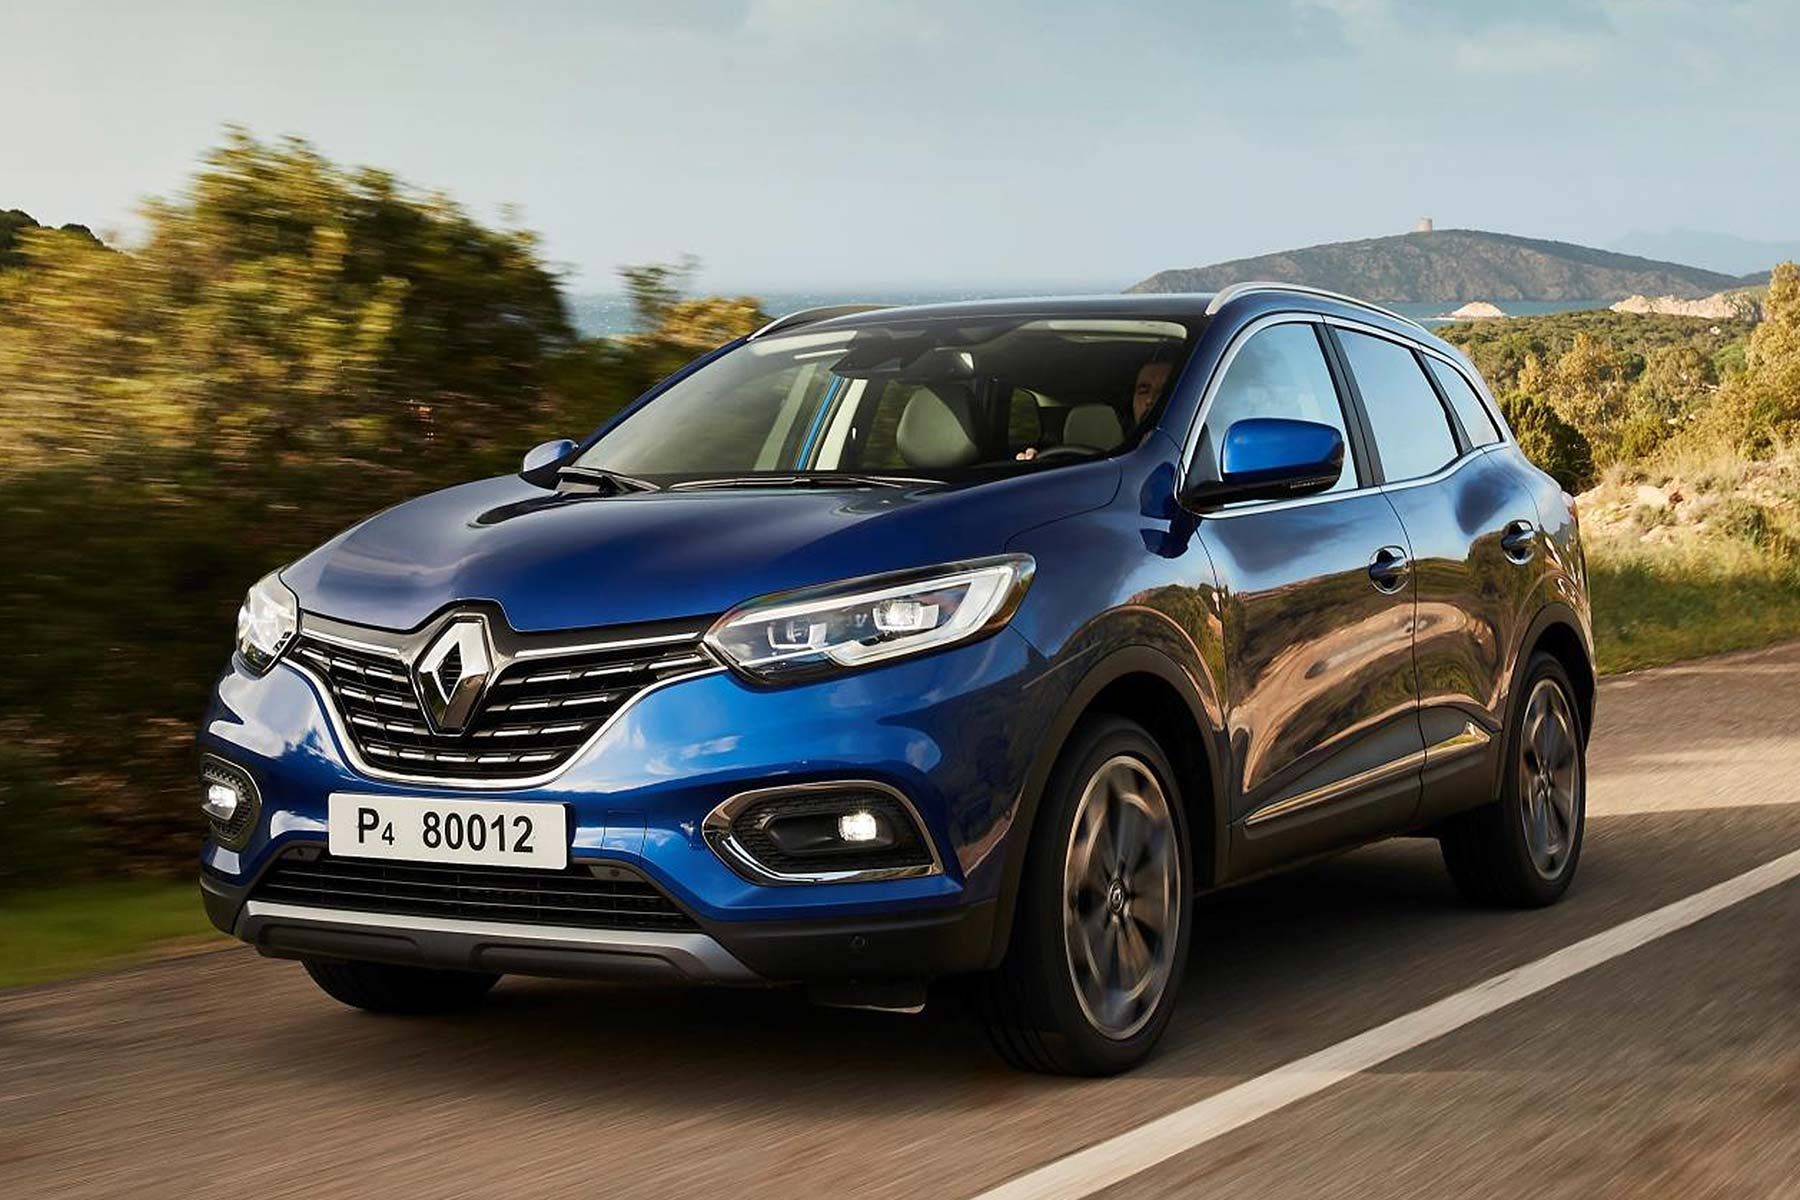 renault has facelifted and simplified the kadjar family suv motoring research. Black Bedroom Furniture Sets. Home Design Ideas